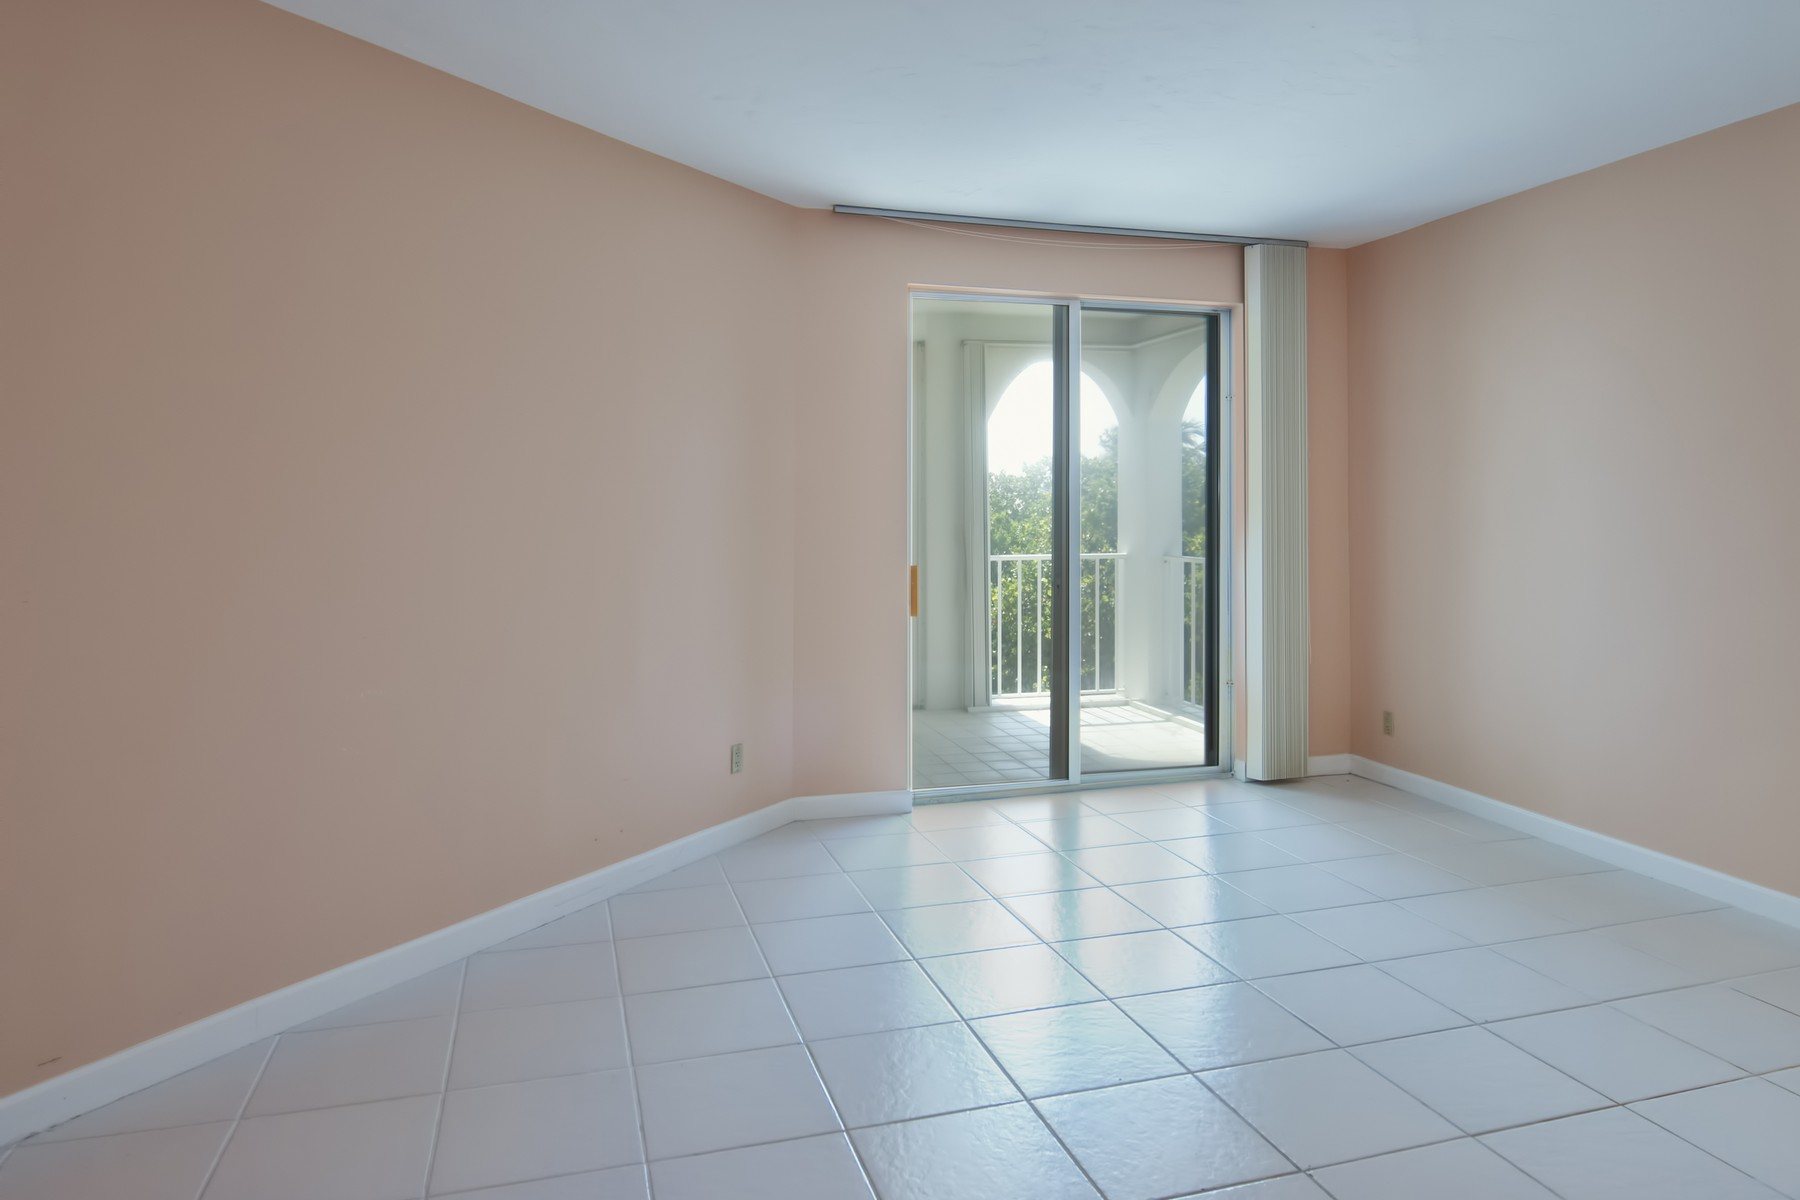 Additional photo for property listing at Two Bedroom Condo With Ocean Views 5670 Highway A1A Unit 315S Vero Beach, Florida 32963 United States